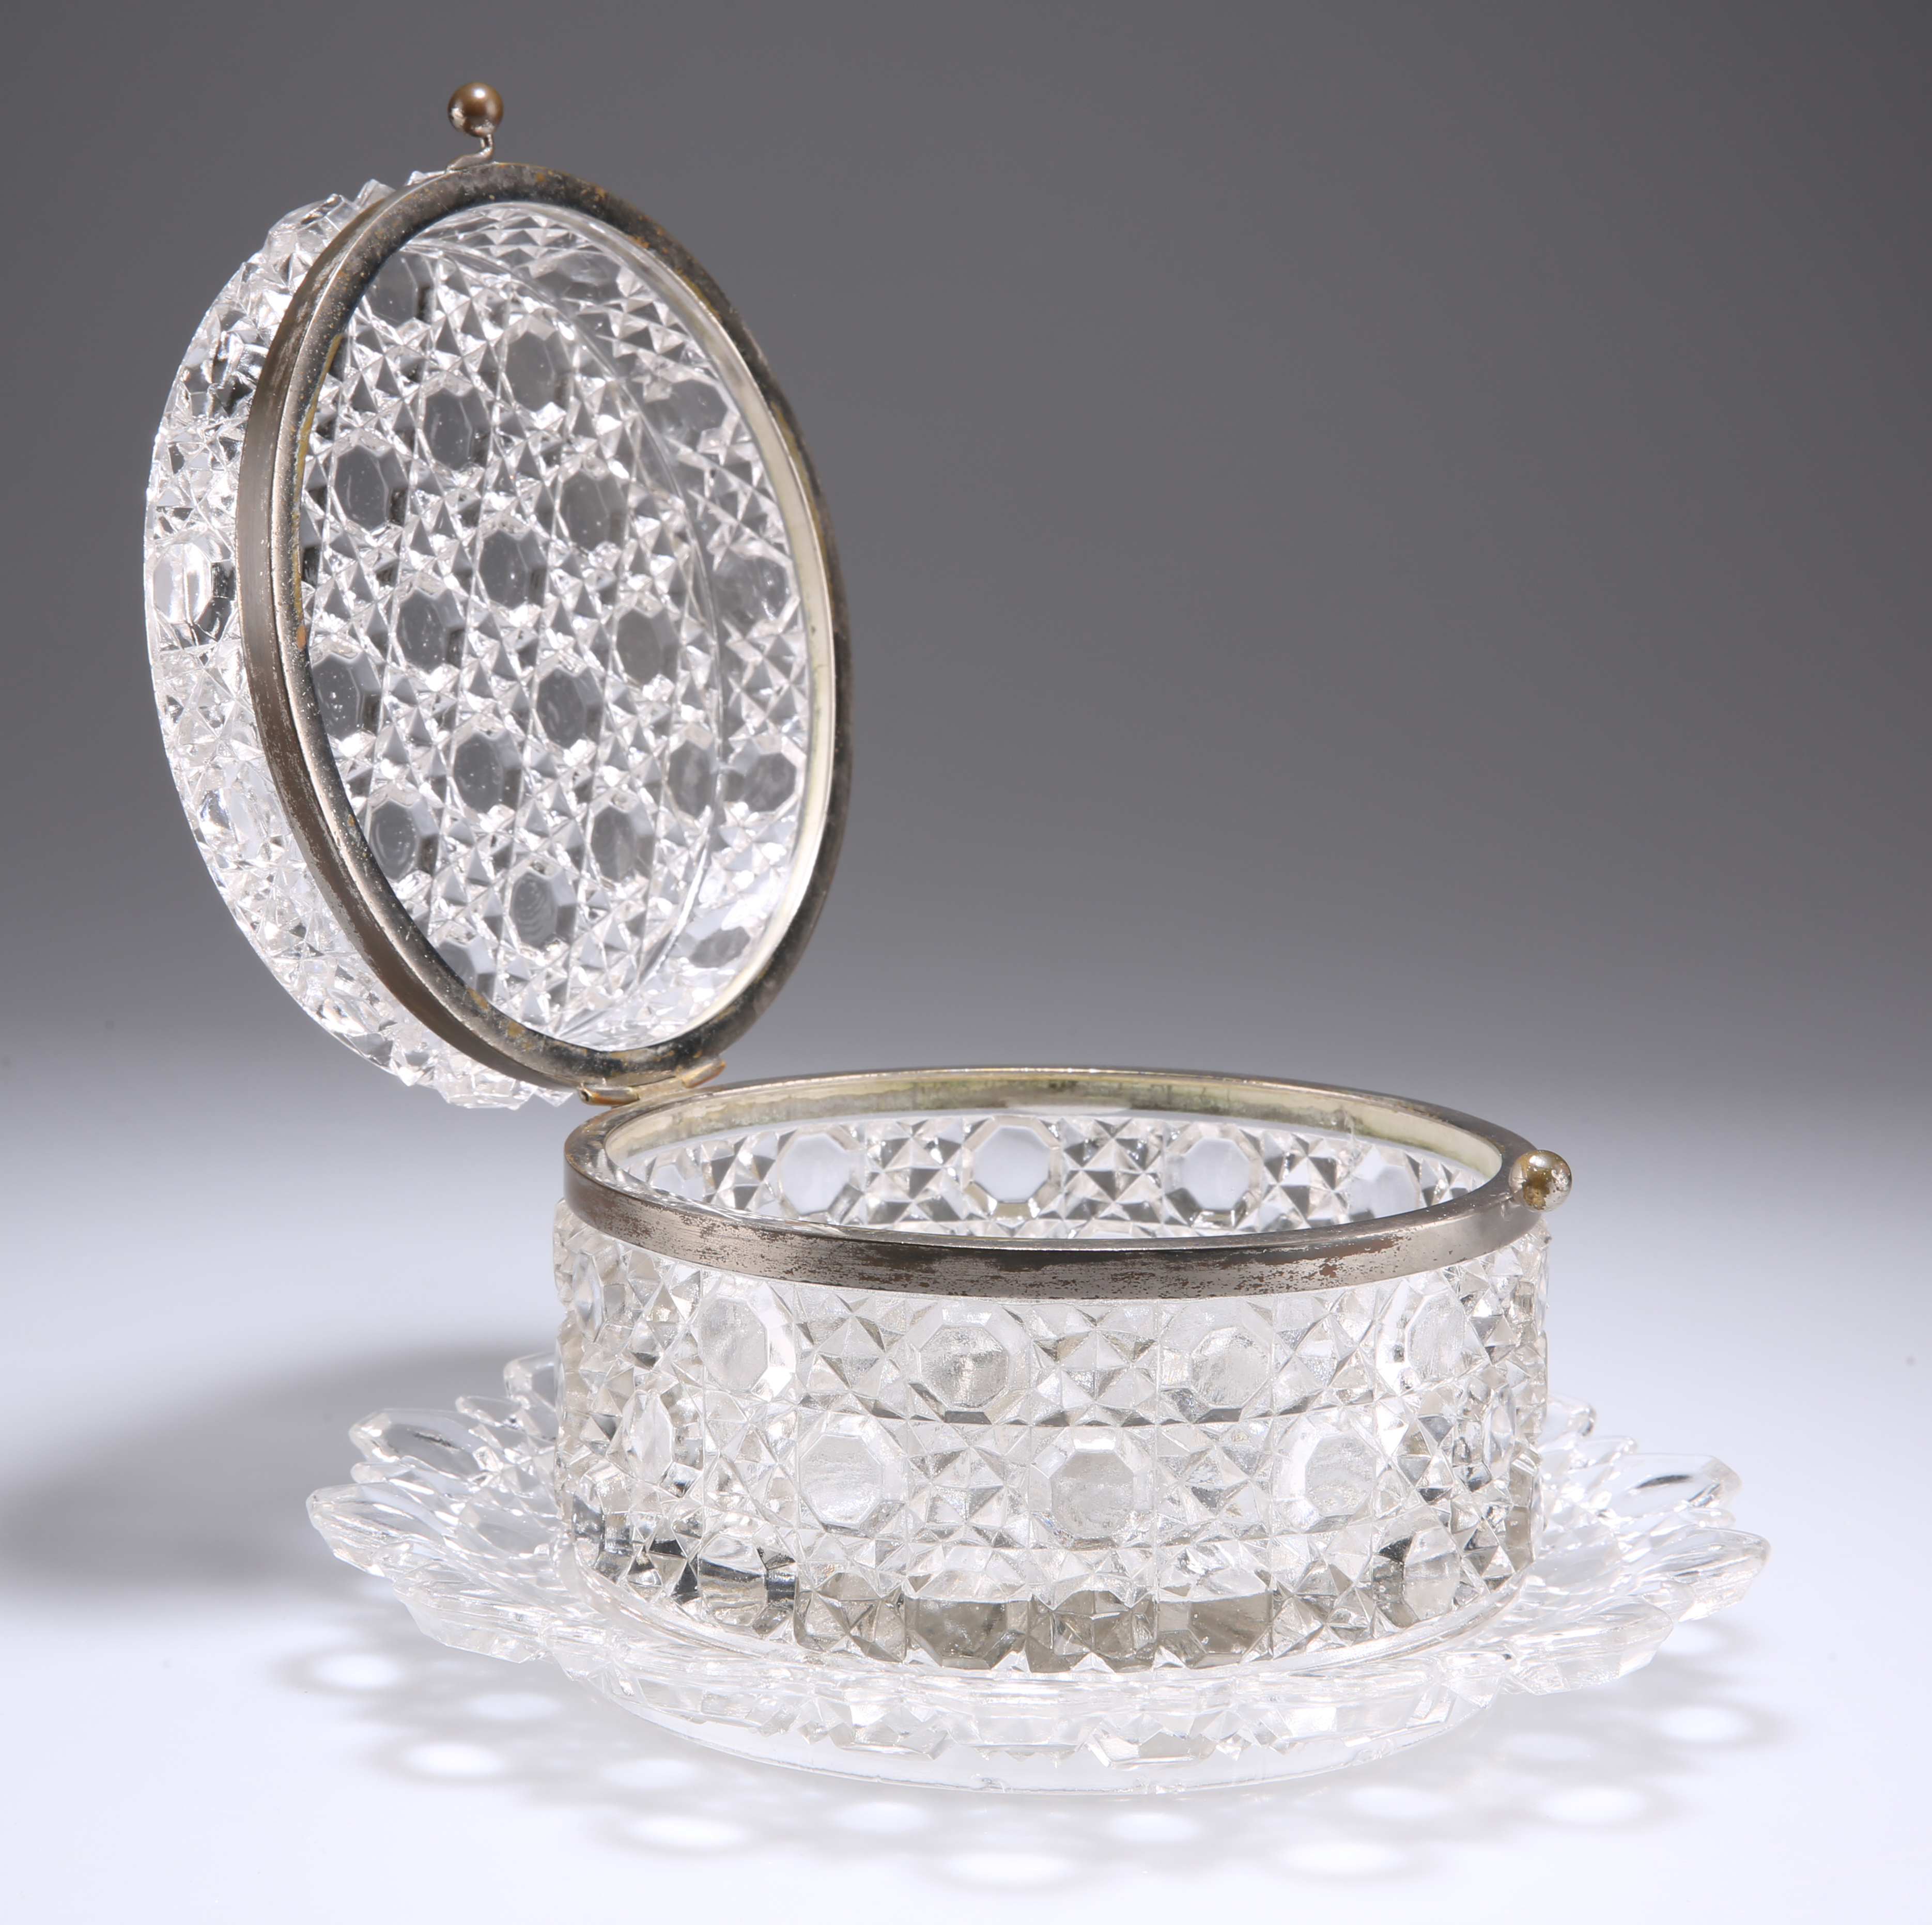 A BACCARAT GLASS CASKET ON STAND, CIRCA 1880 - Image 2 of 2